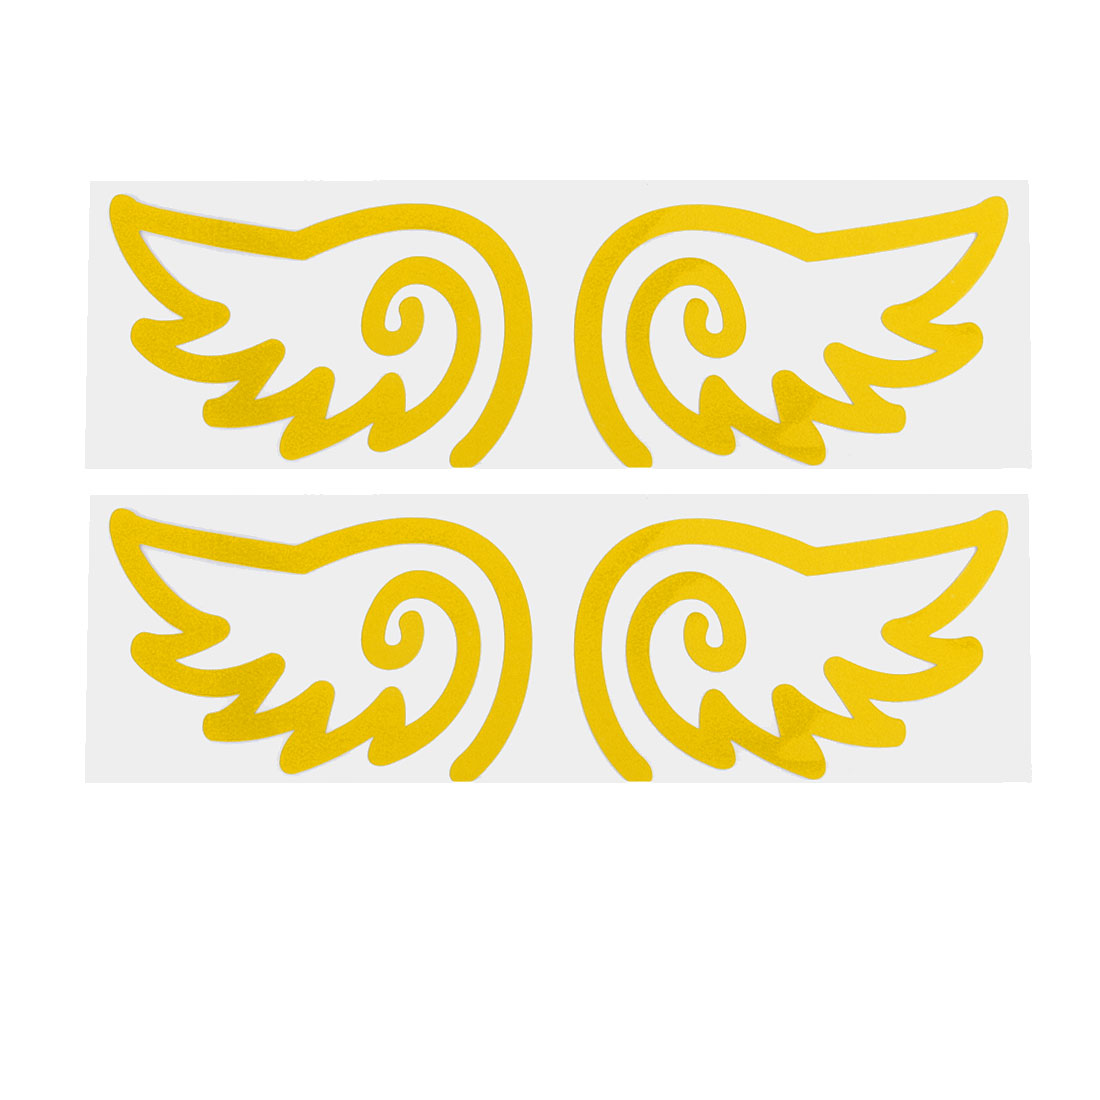 2 Pairs Yellow Wing Pattern Adhesive Reflective Sticker Decal Sign for Car Auto